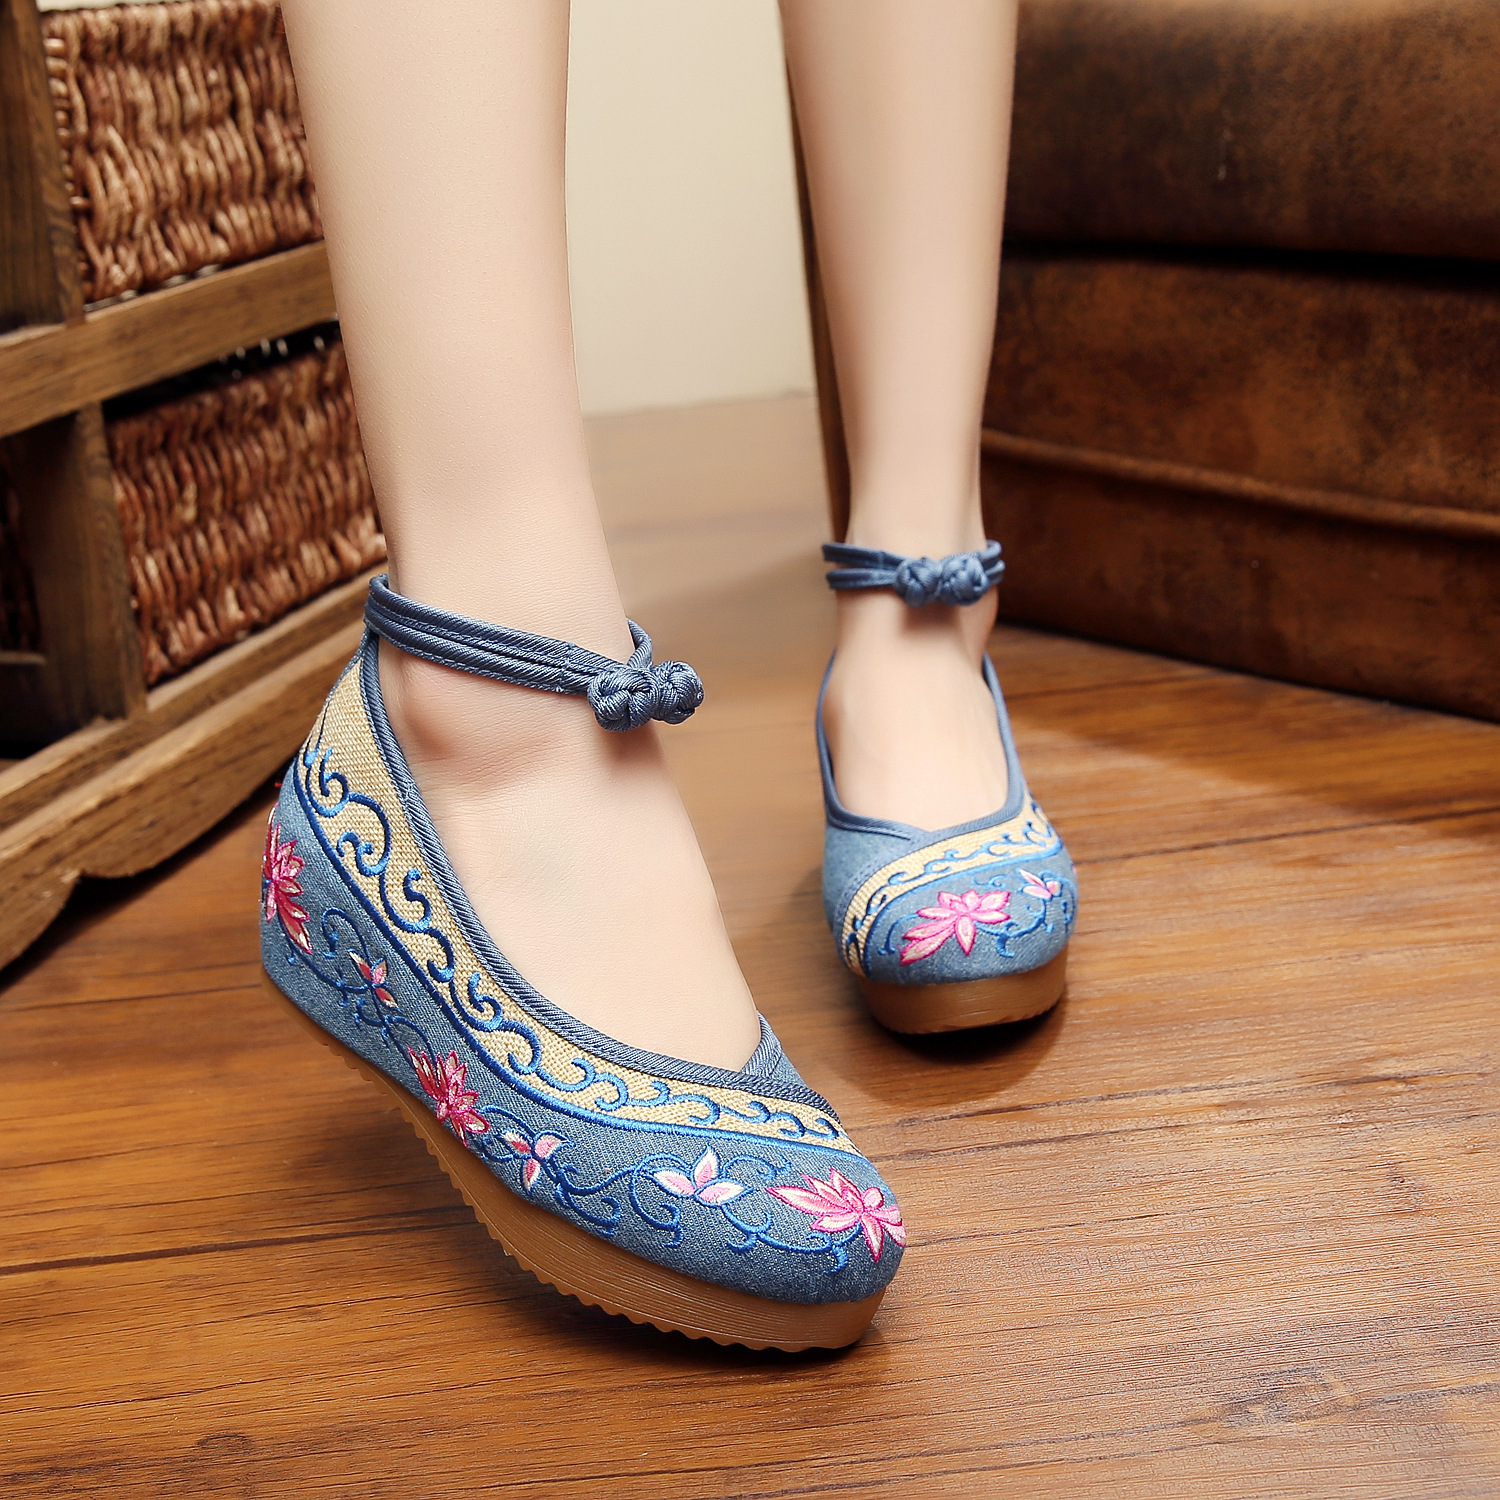 2017 New 5cm wedge heels Chinese women Lotus embroidery shoes flats leisure zapatos mujer creepers espadrilles four colours<br><br>Aliexpress